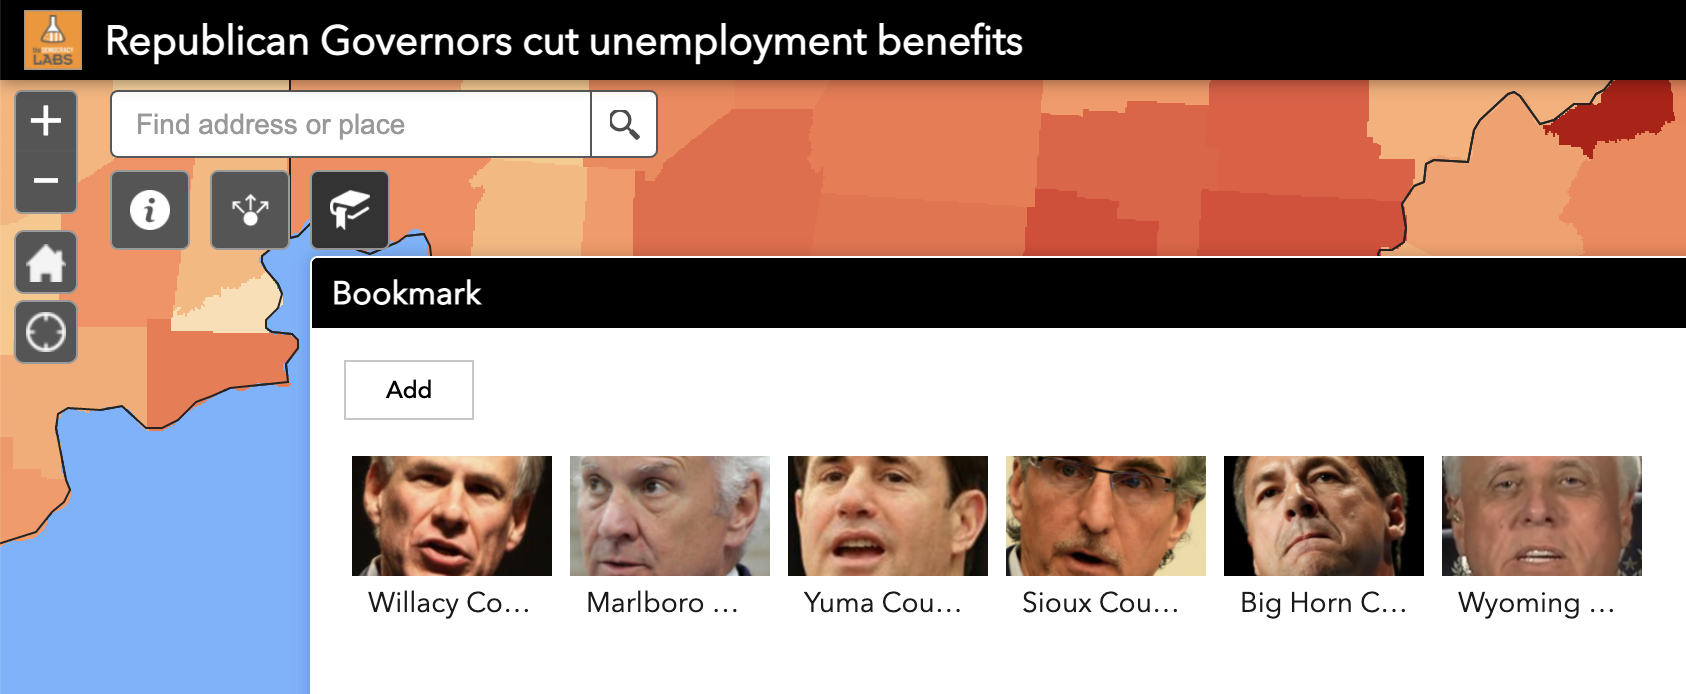 Bookmarks make it easy to navigate and find unemployment rates in counties